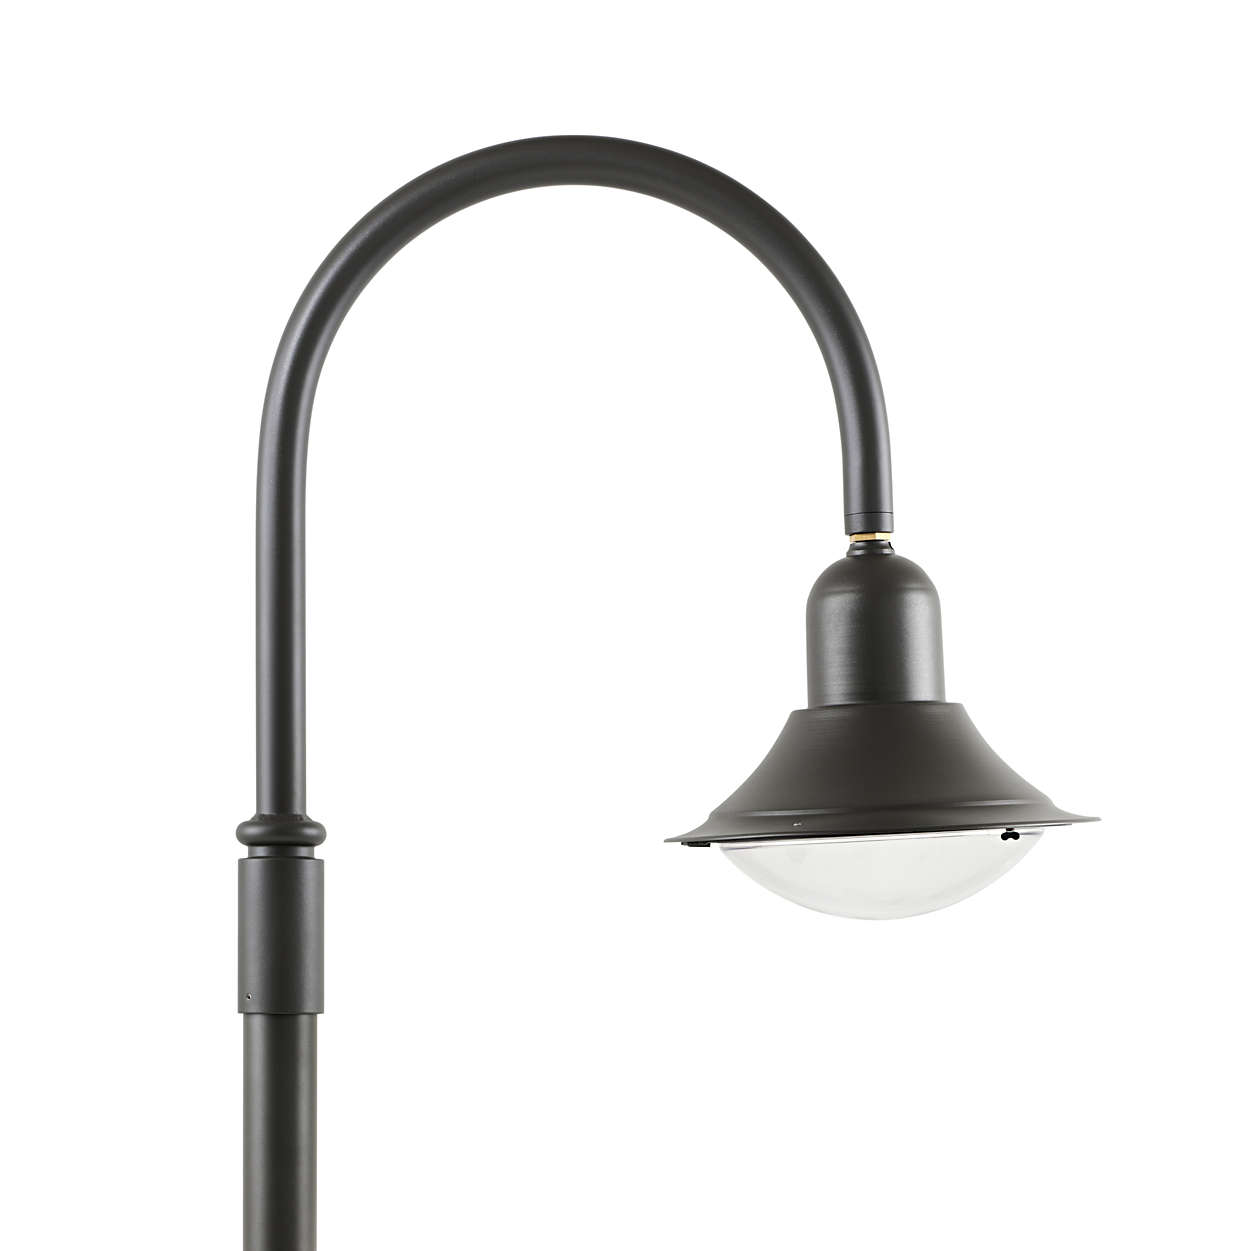 CityCurve gen2 – retro-style luminaire for both contemporary and heritage environments